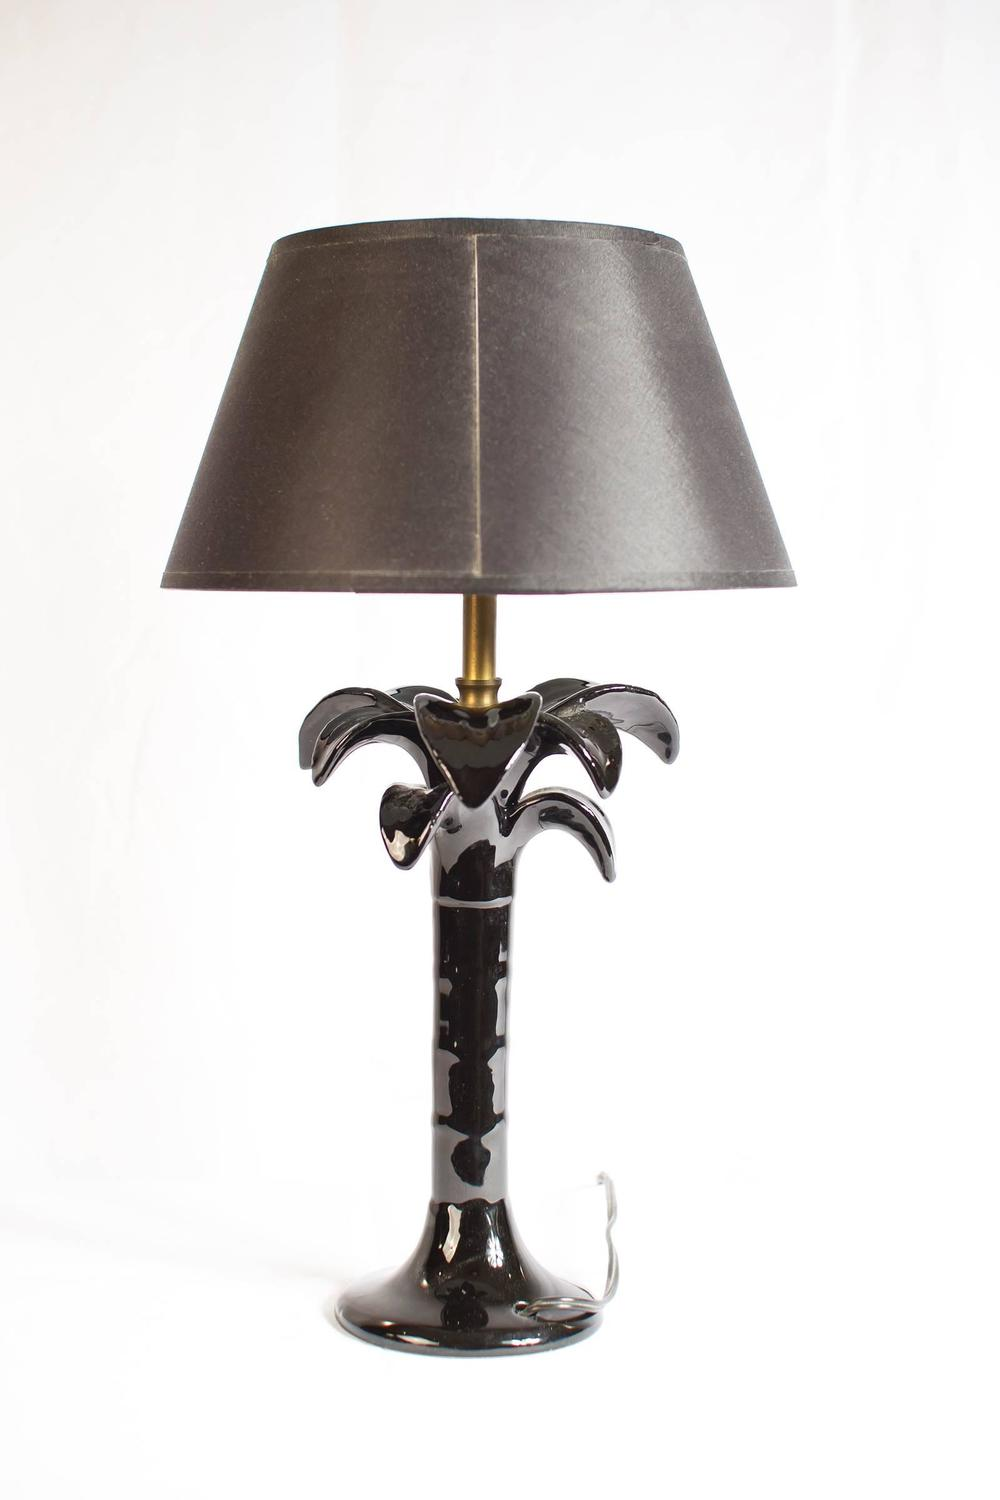 hollywood regency ceramic palm tree table lamp for sale at 1stdibs. Black Bedroom Furniture Sets. Home Design Ideas